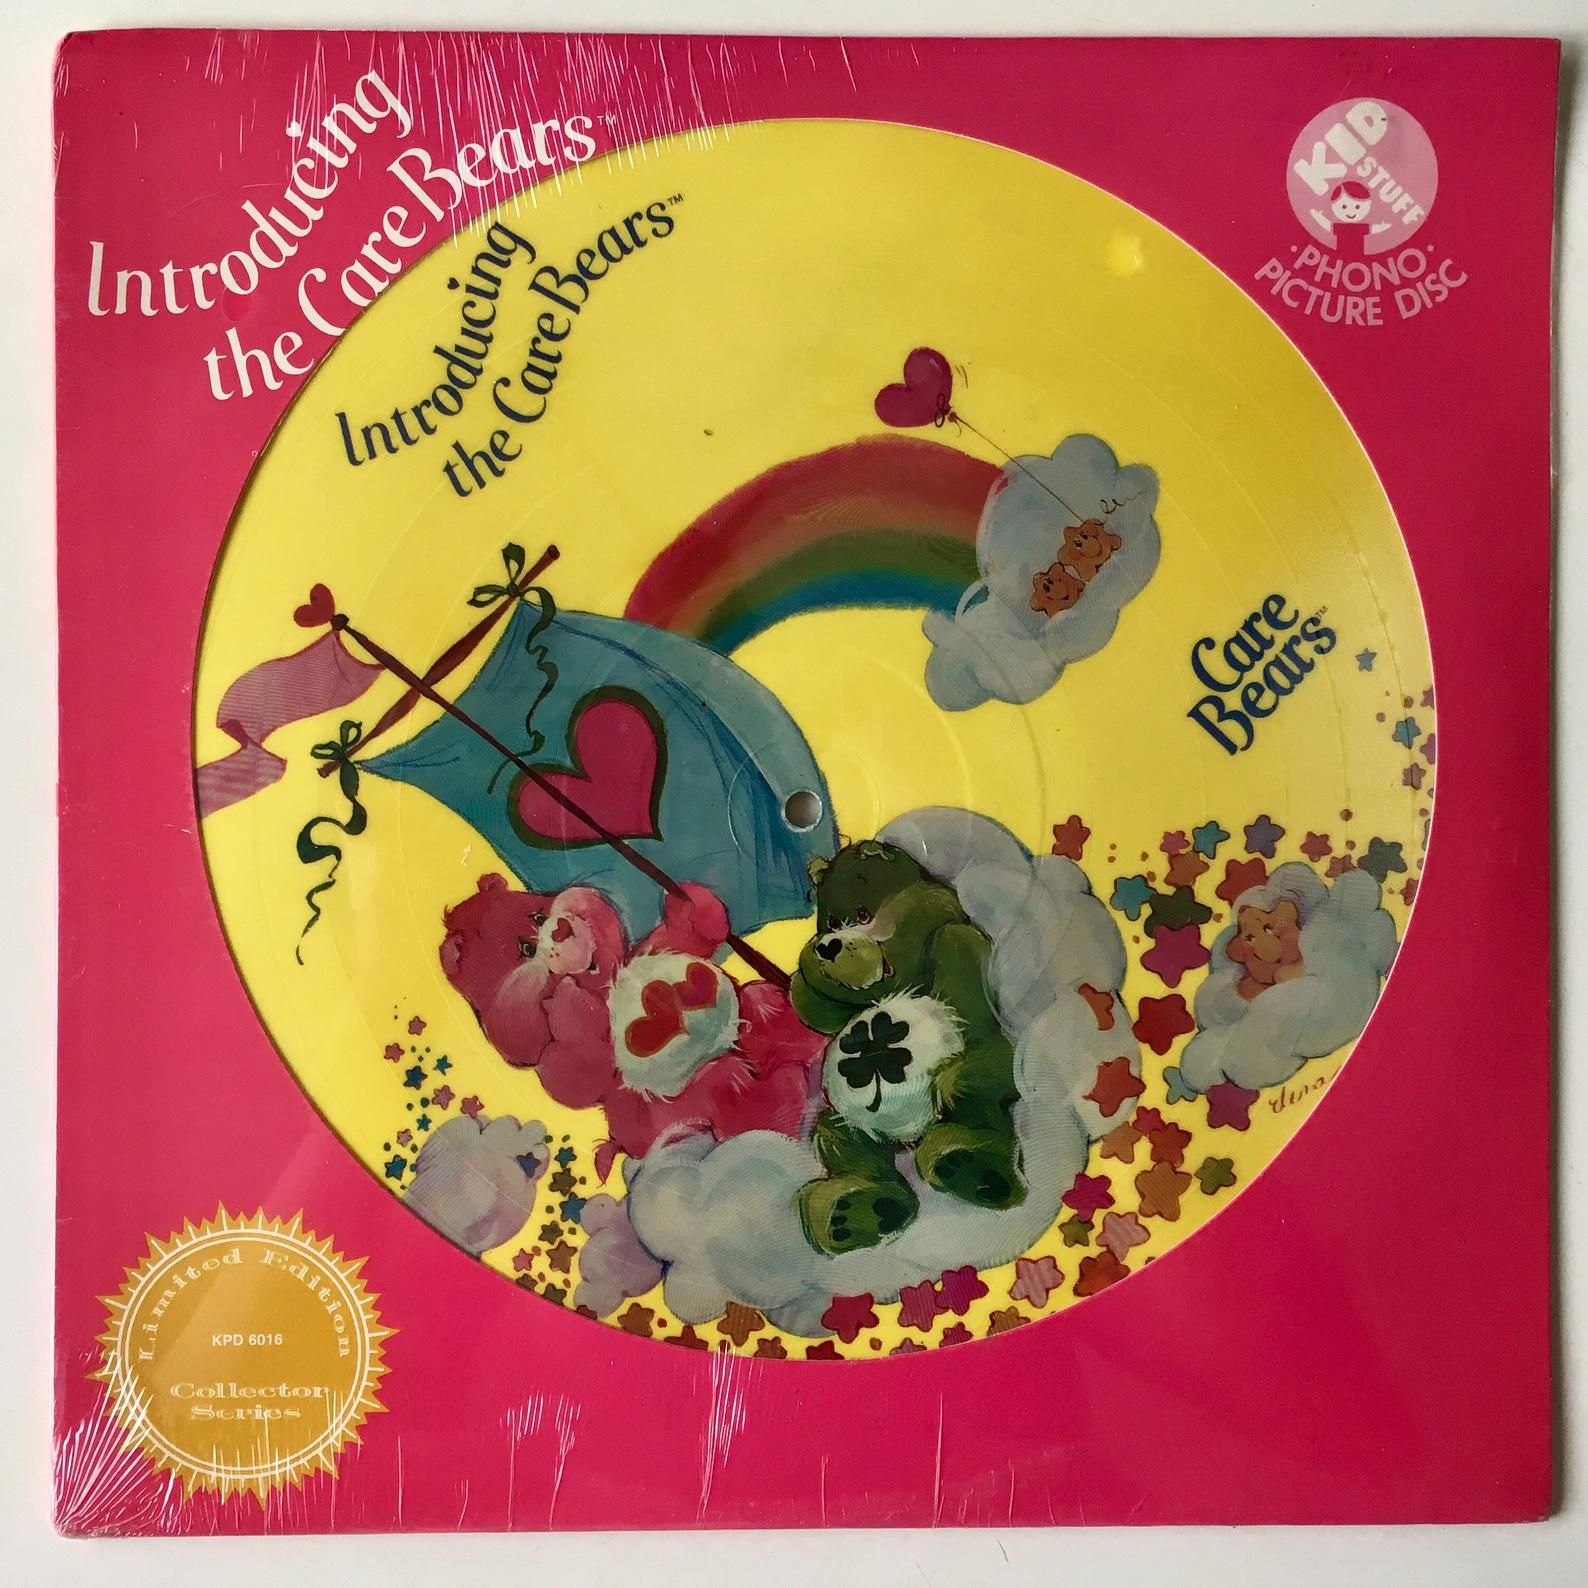 The Care Bears Introducing Limited Edition Sealed Picture Etsy Care Bears Movie Vinyl Record Album Care Bears